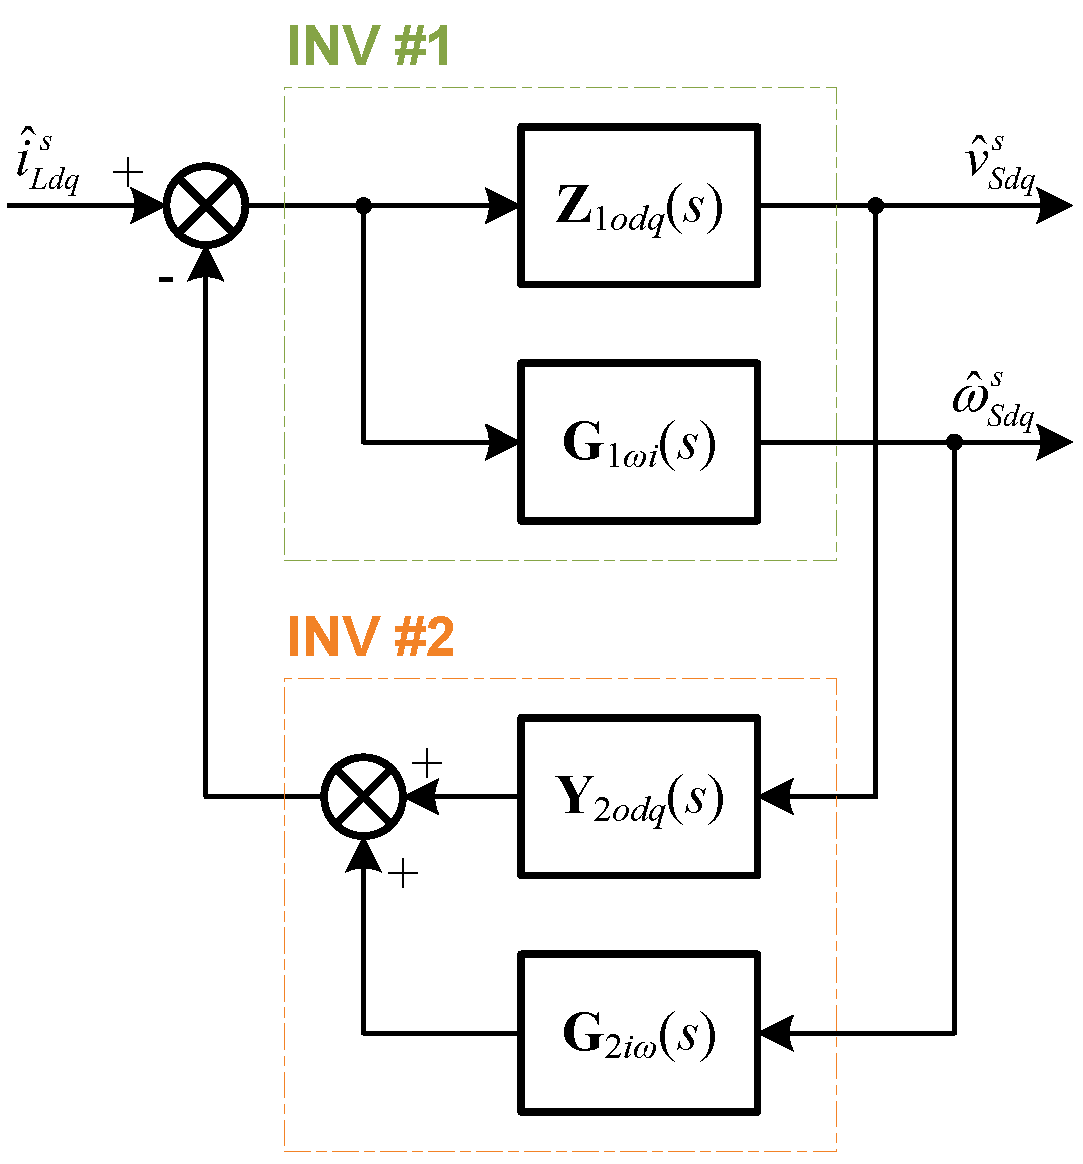 Image of small-signal block diagram of the parallel inverters based on terminal characteristics of indi-vidual inverters.